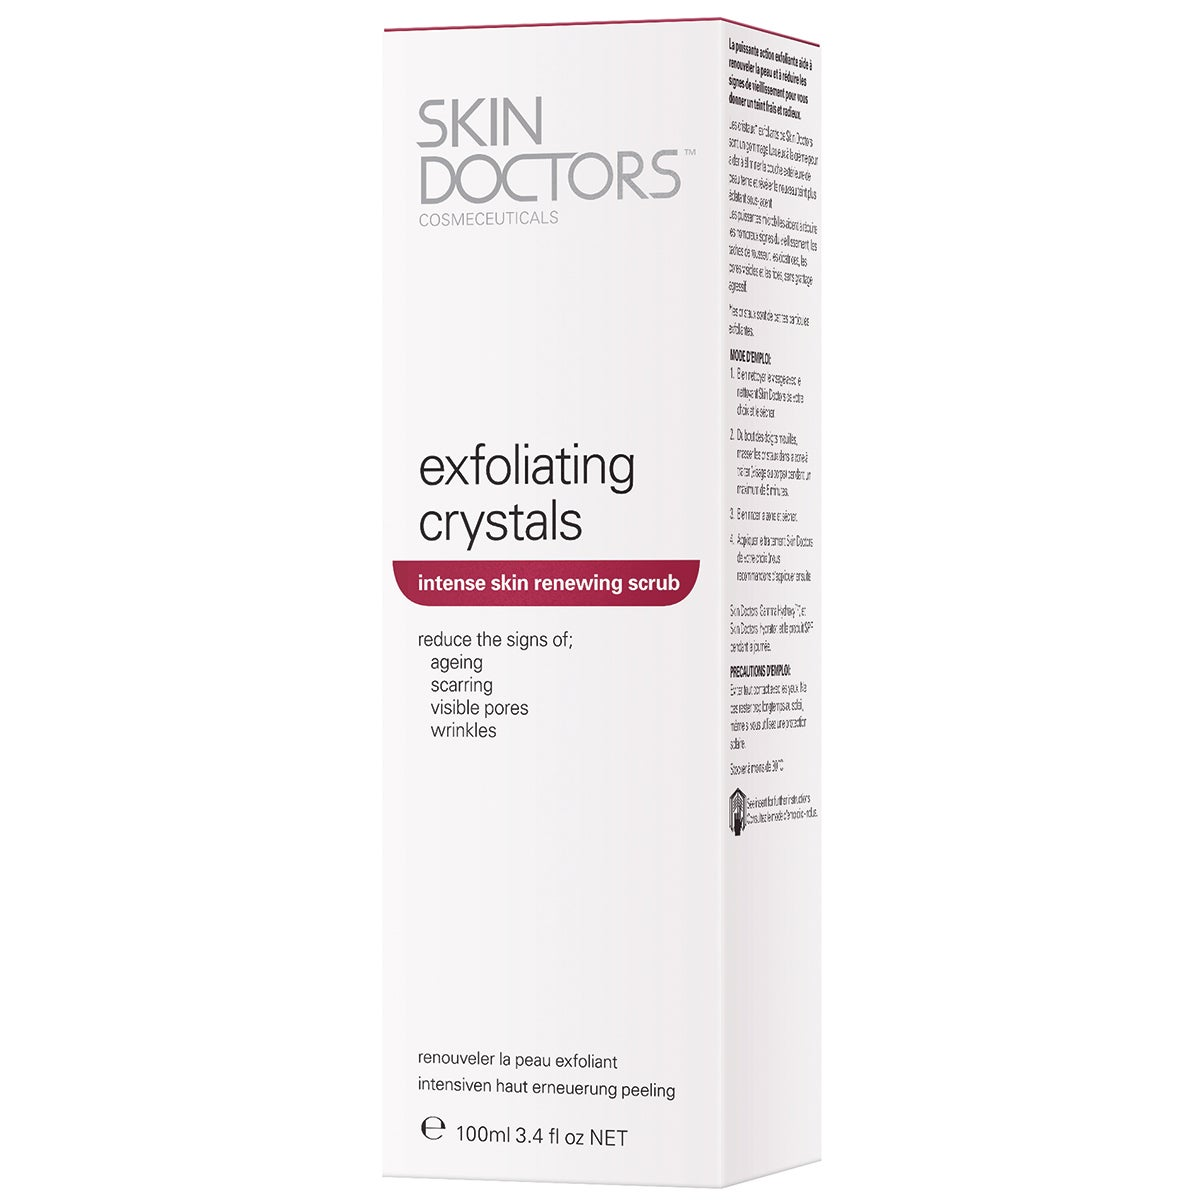 Skin Doctors Exfoliating Crystals